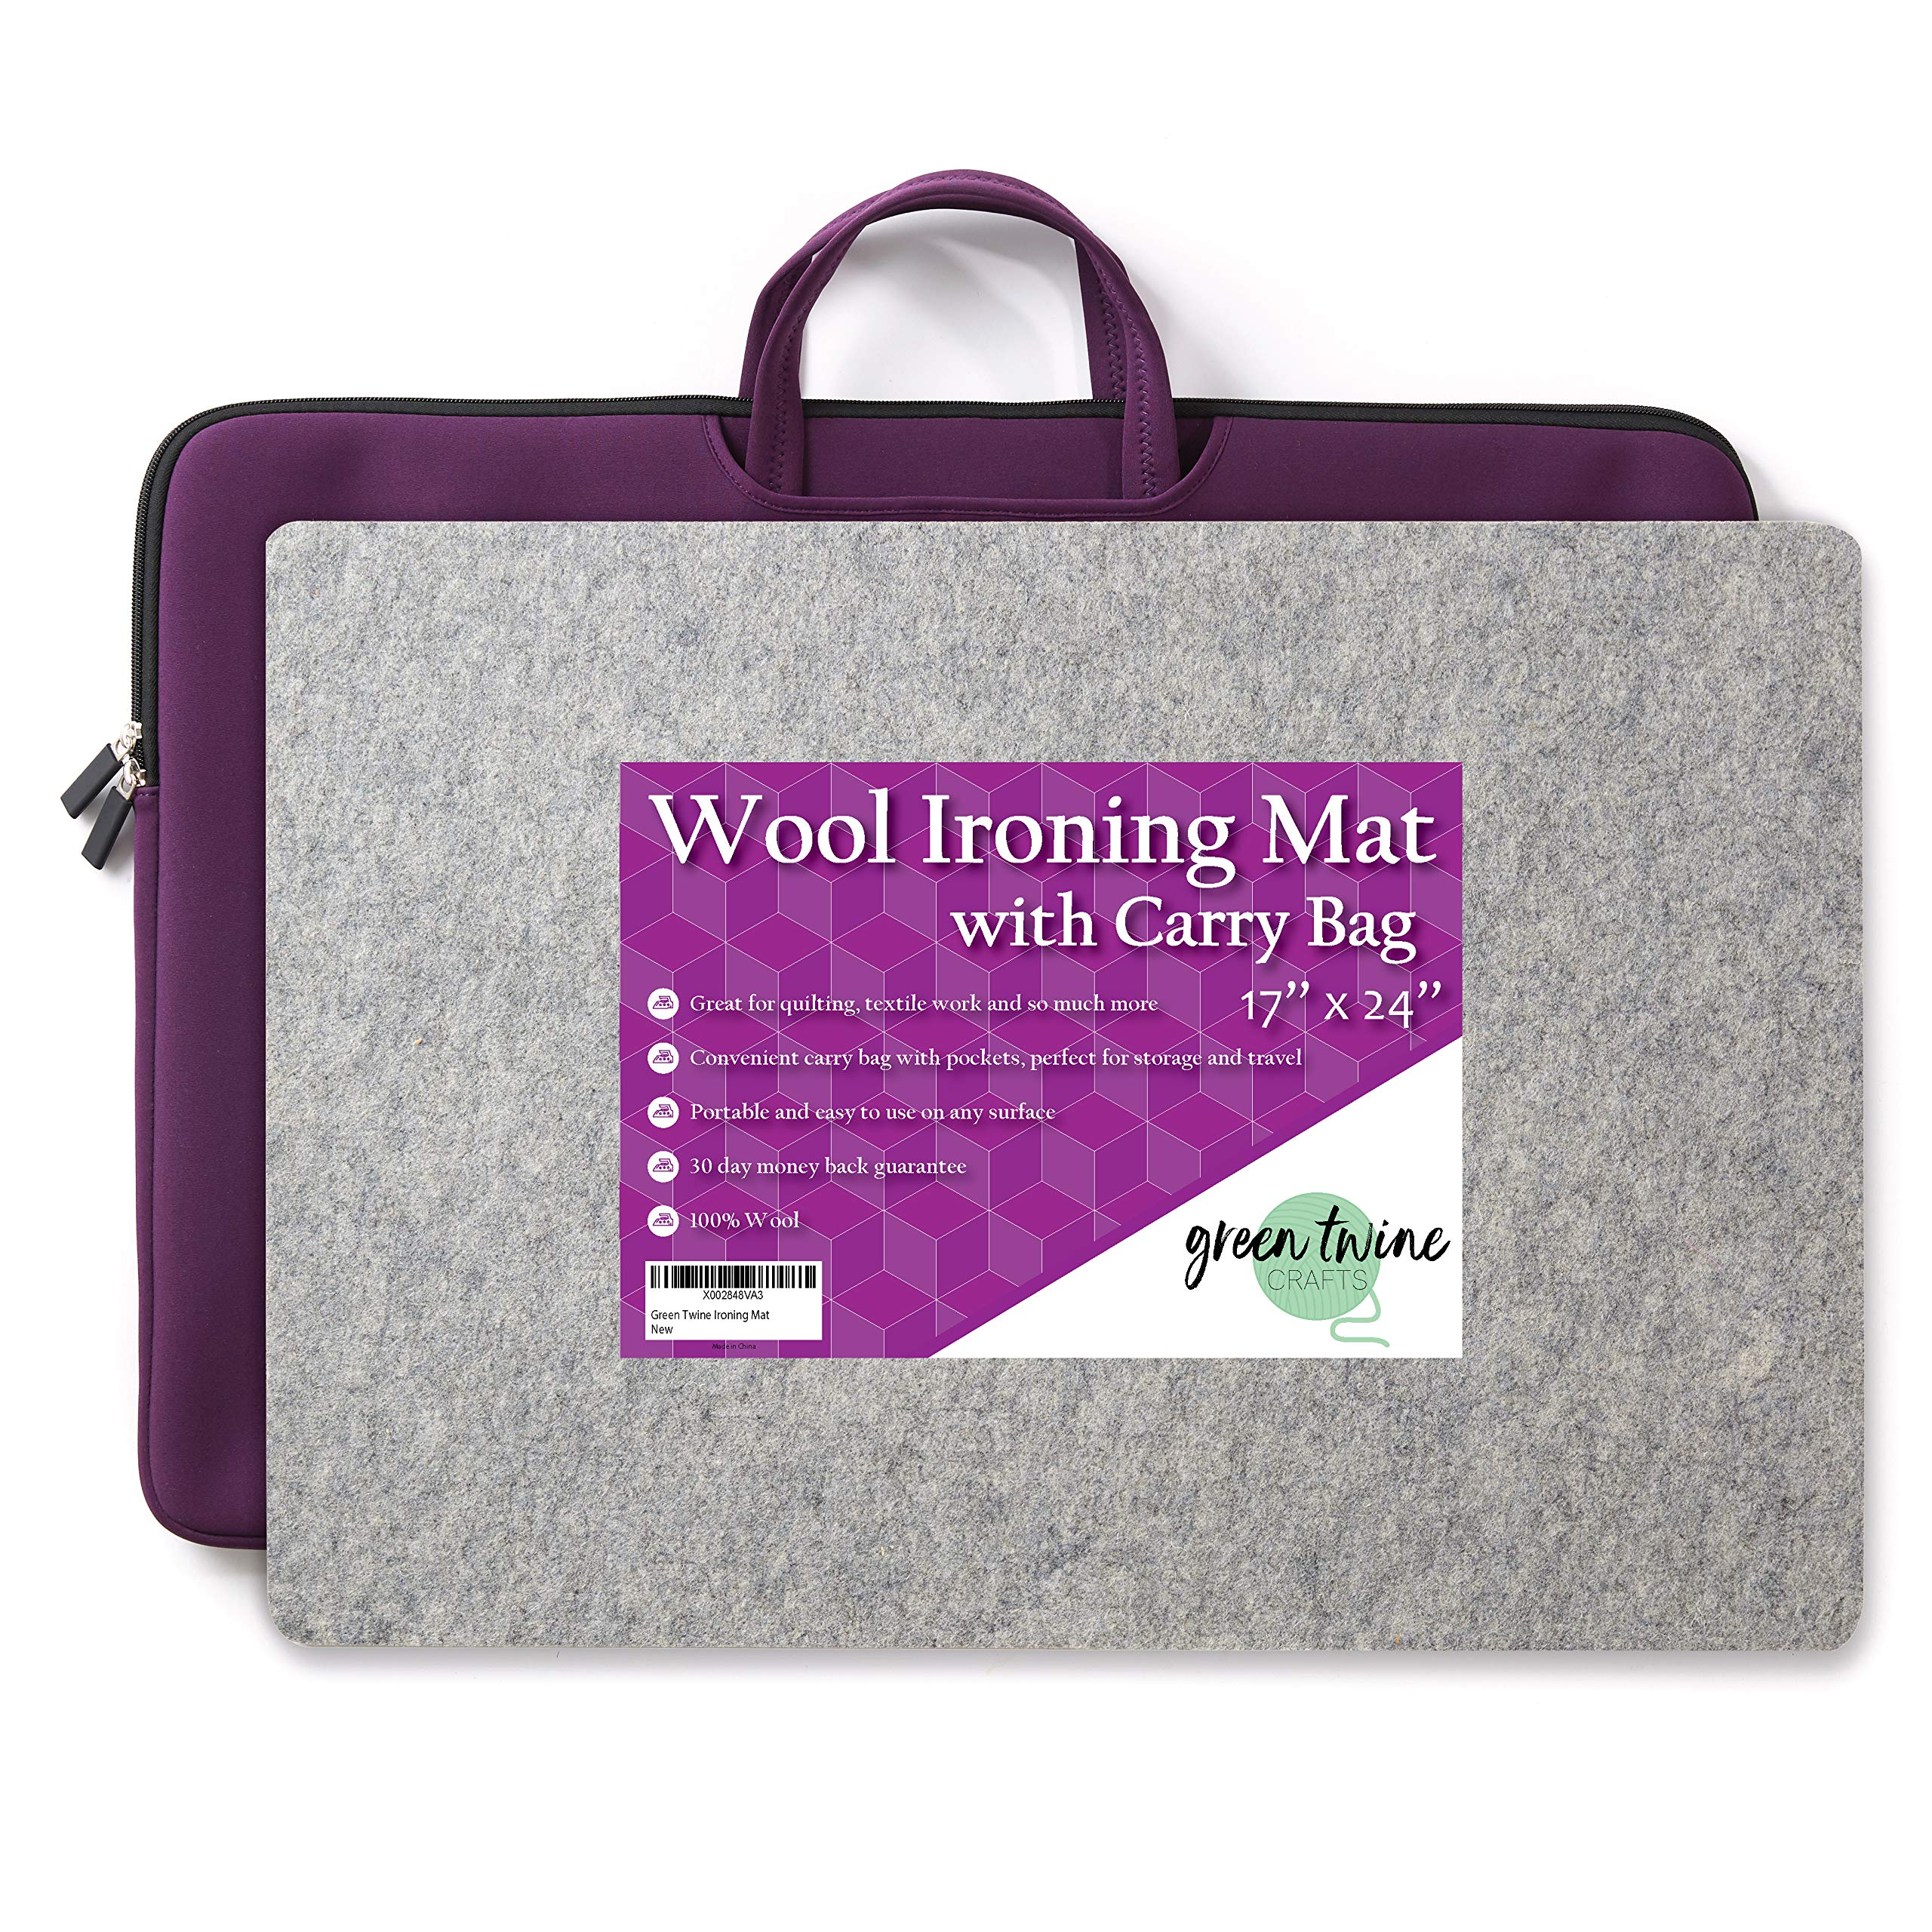 17'' x 24'' Ironing Mat with Carry Bag - 100 % Wool 1/2'' Thick Felted Portable Pressing Pad for Quilting or Textiles. Convenient Travel and Storage Carrier with Pockets for Classes and Retreats by Green Twine